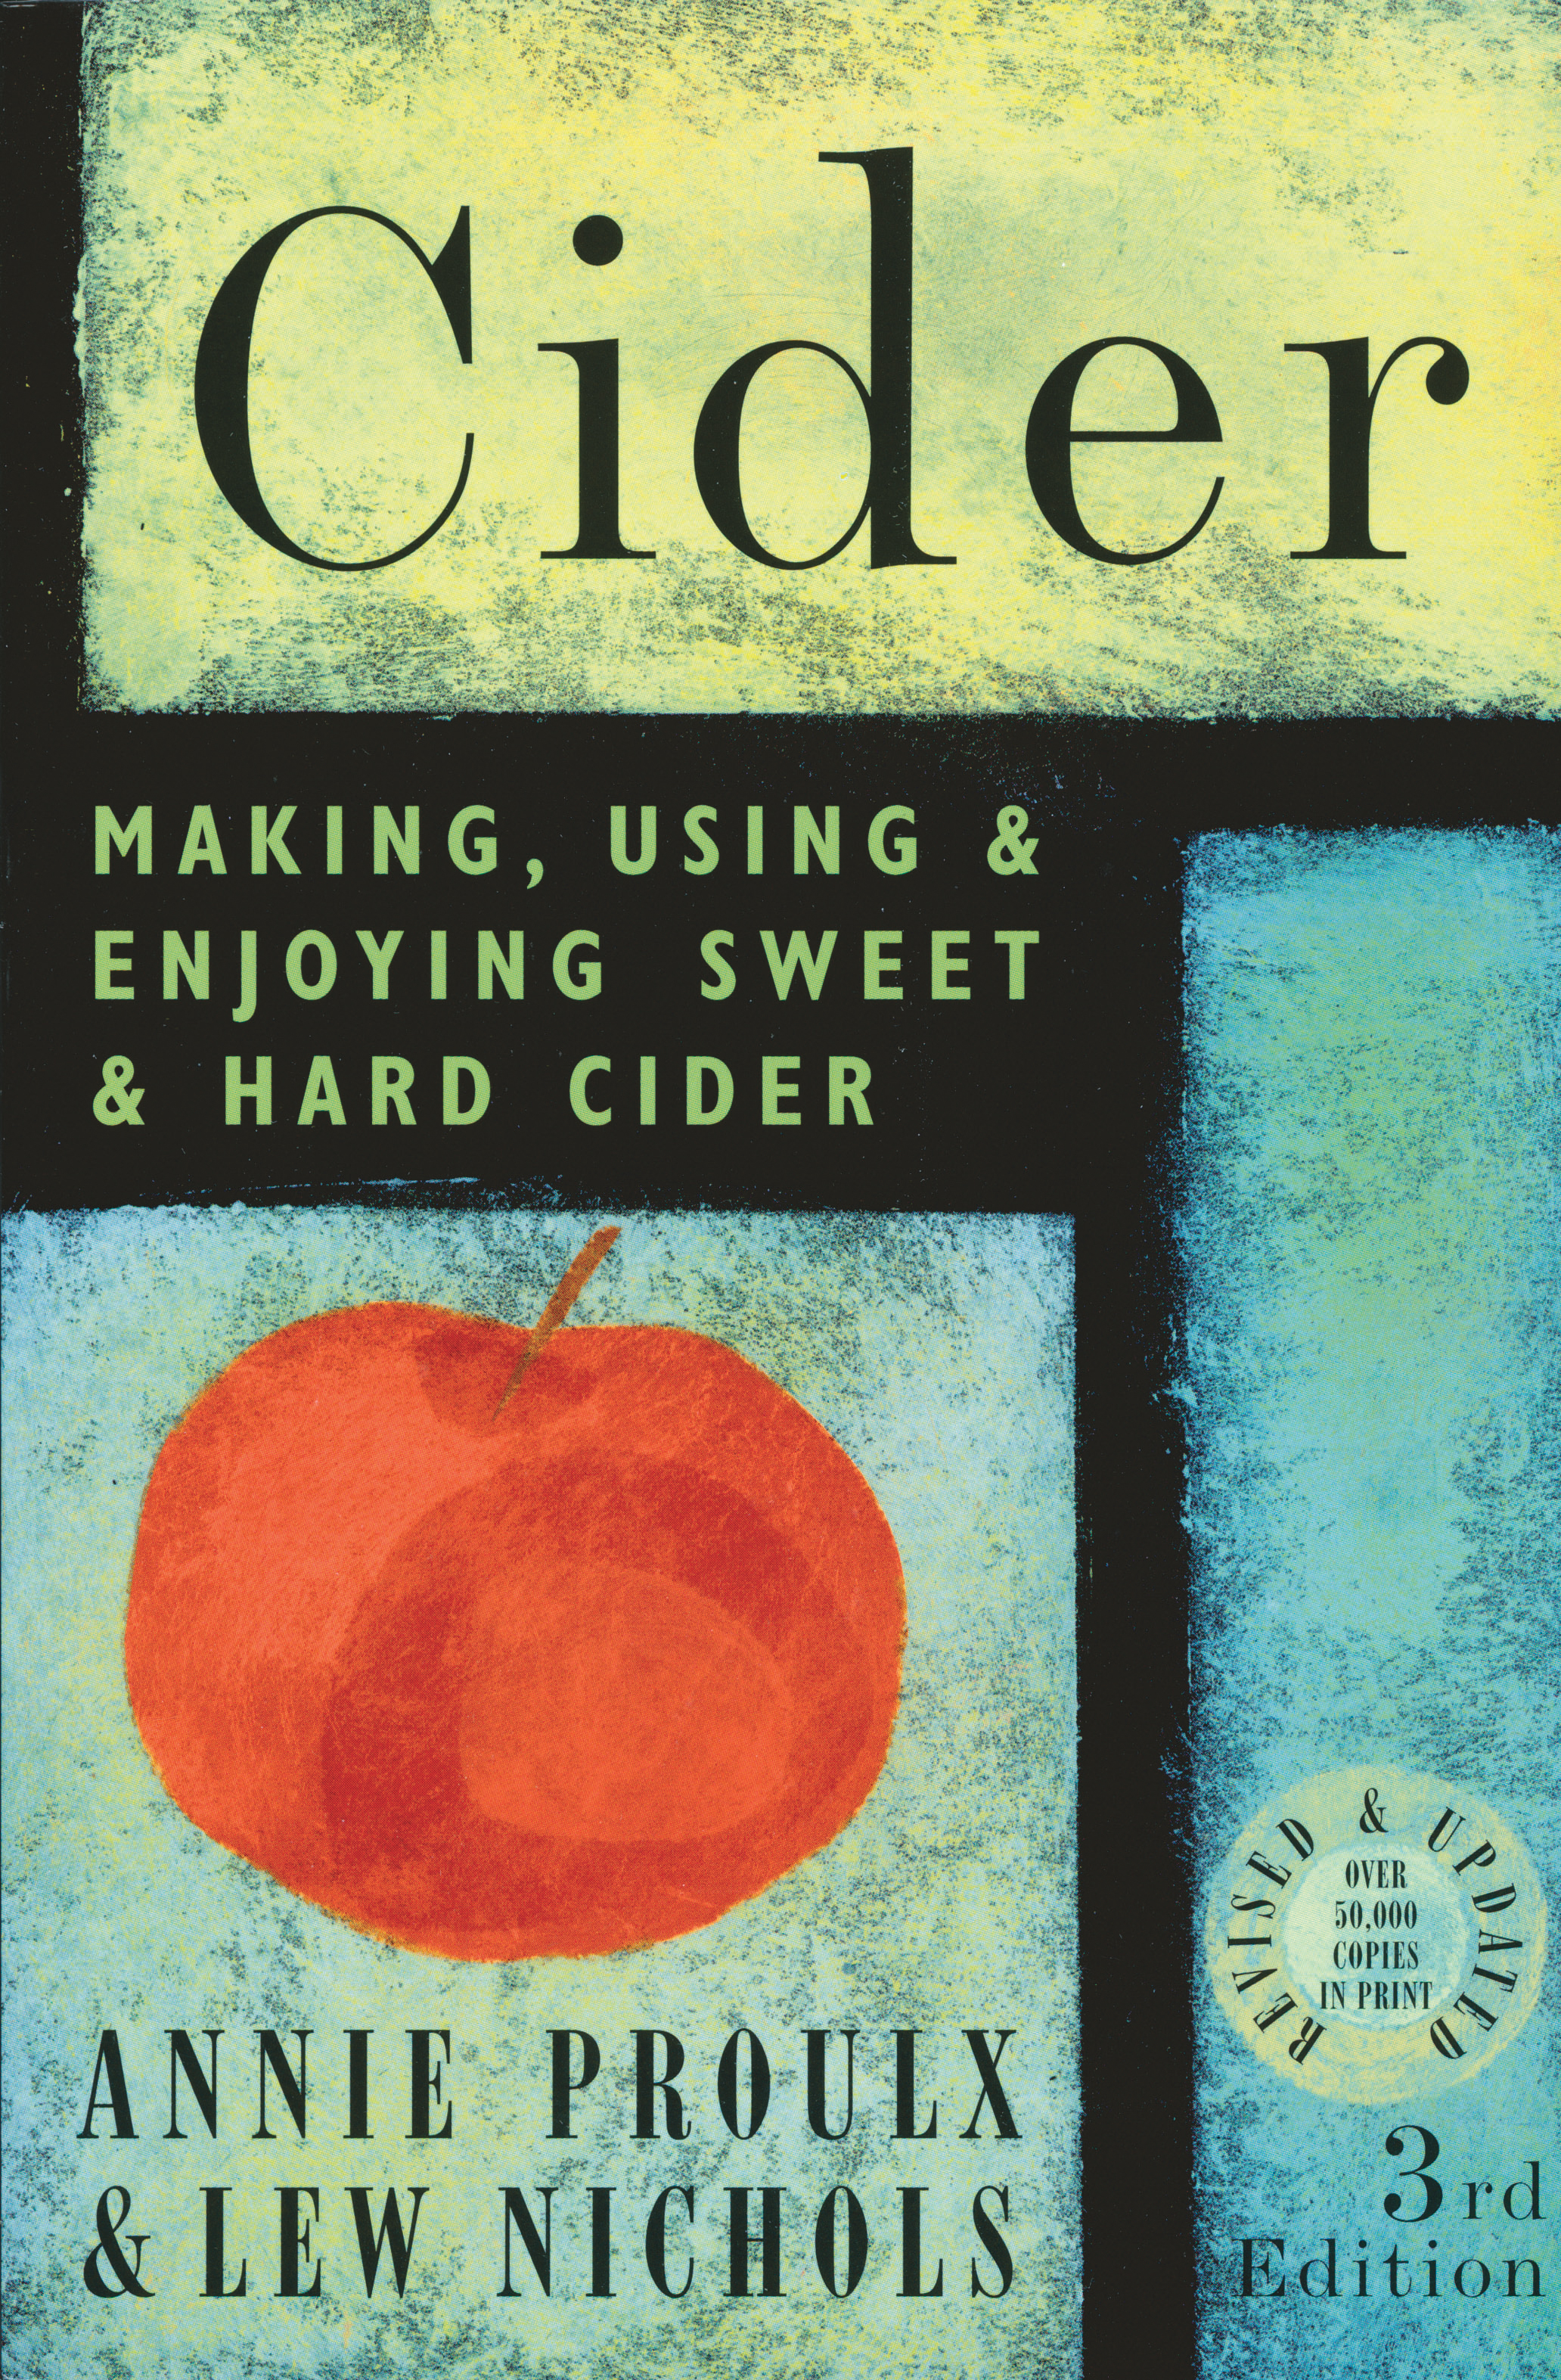 Cider Making, Using & Enjoying Sweet & Hard Cider, 3rd Edition - Lew Nichols